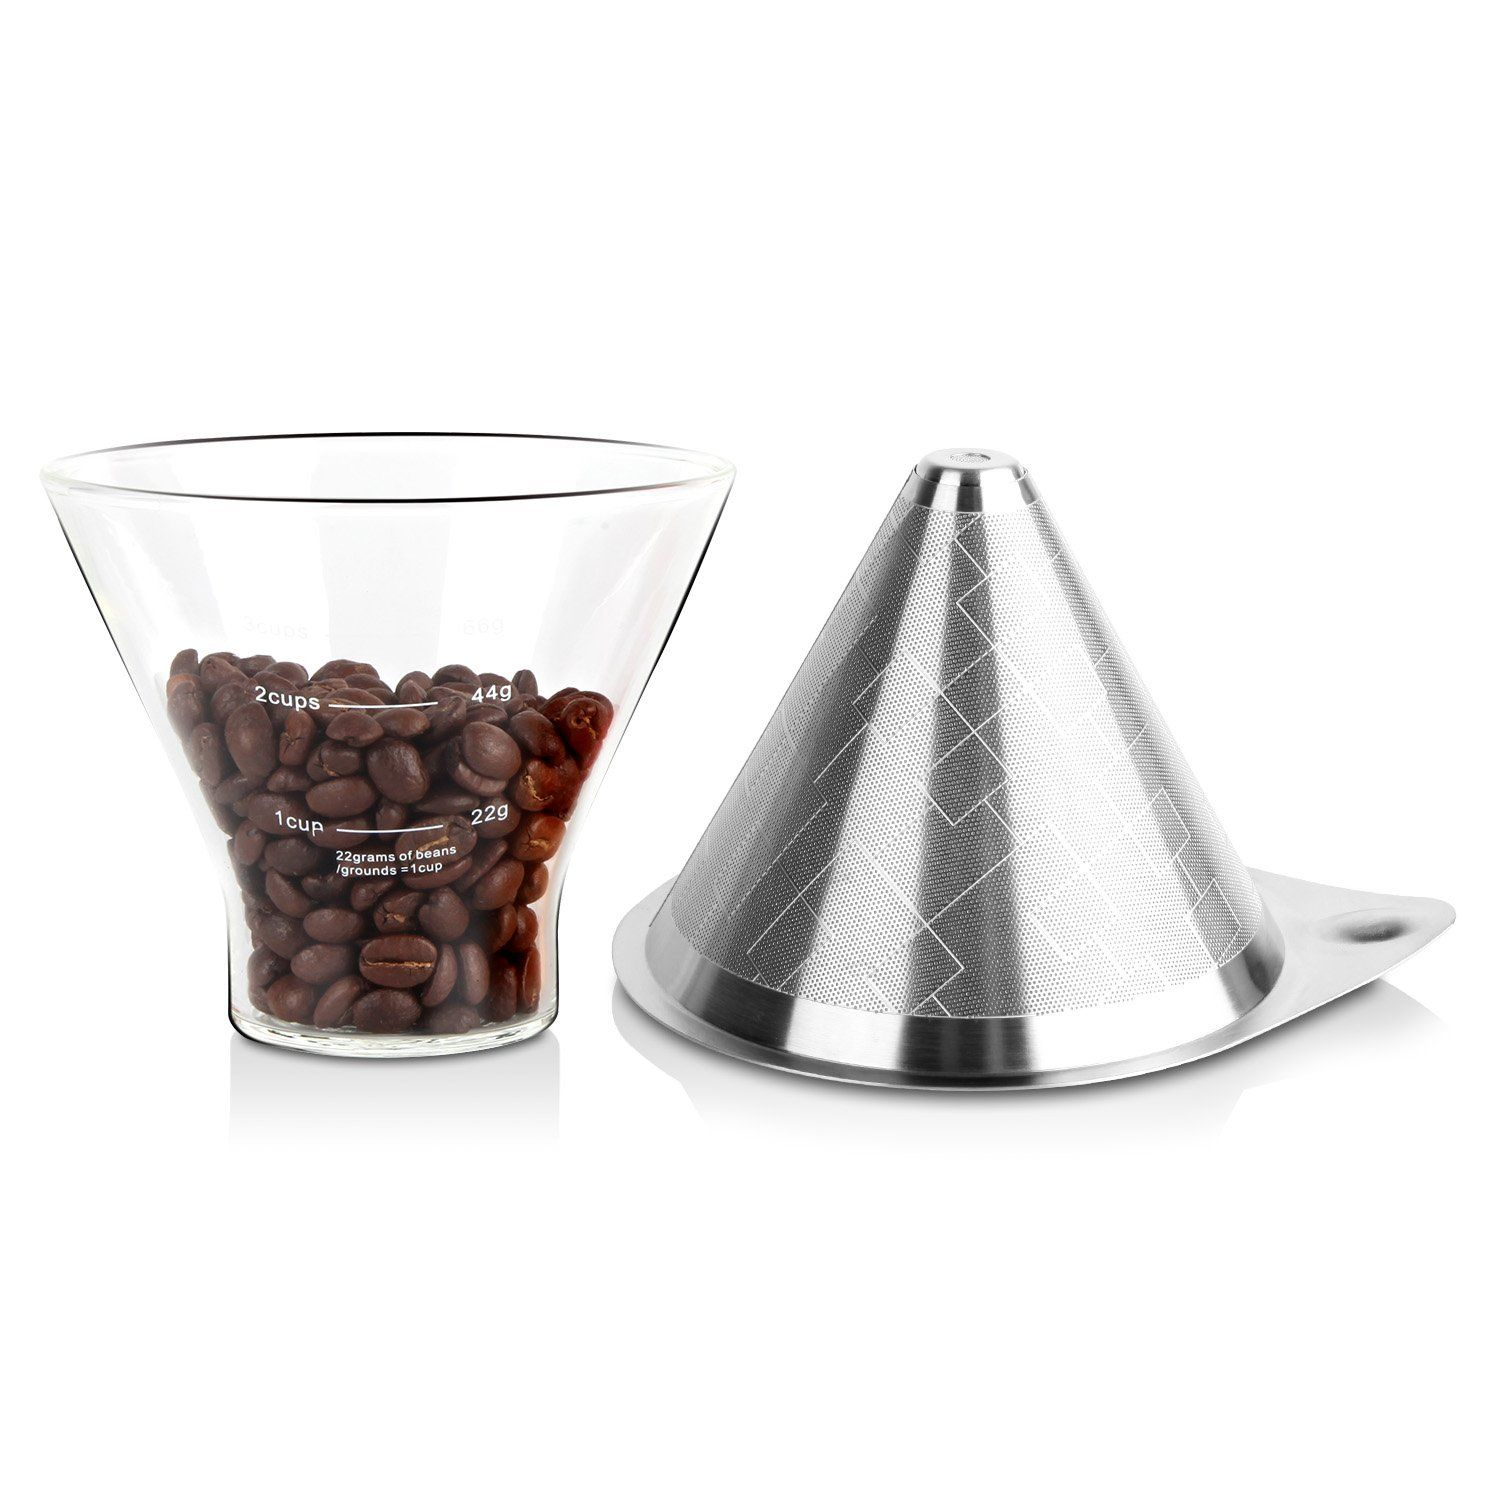 AmoVee Pour Over Coffee Maker Set Drip Cone Coffee Filter and